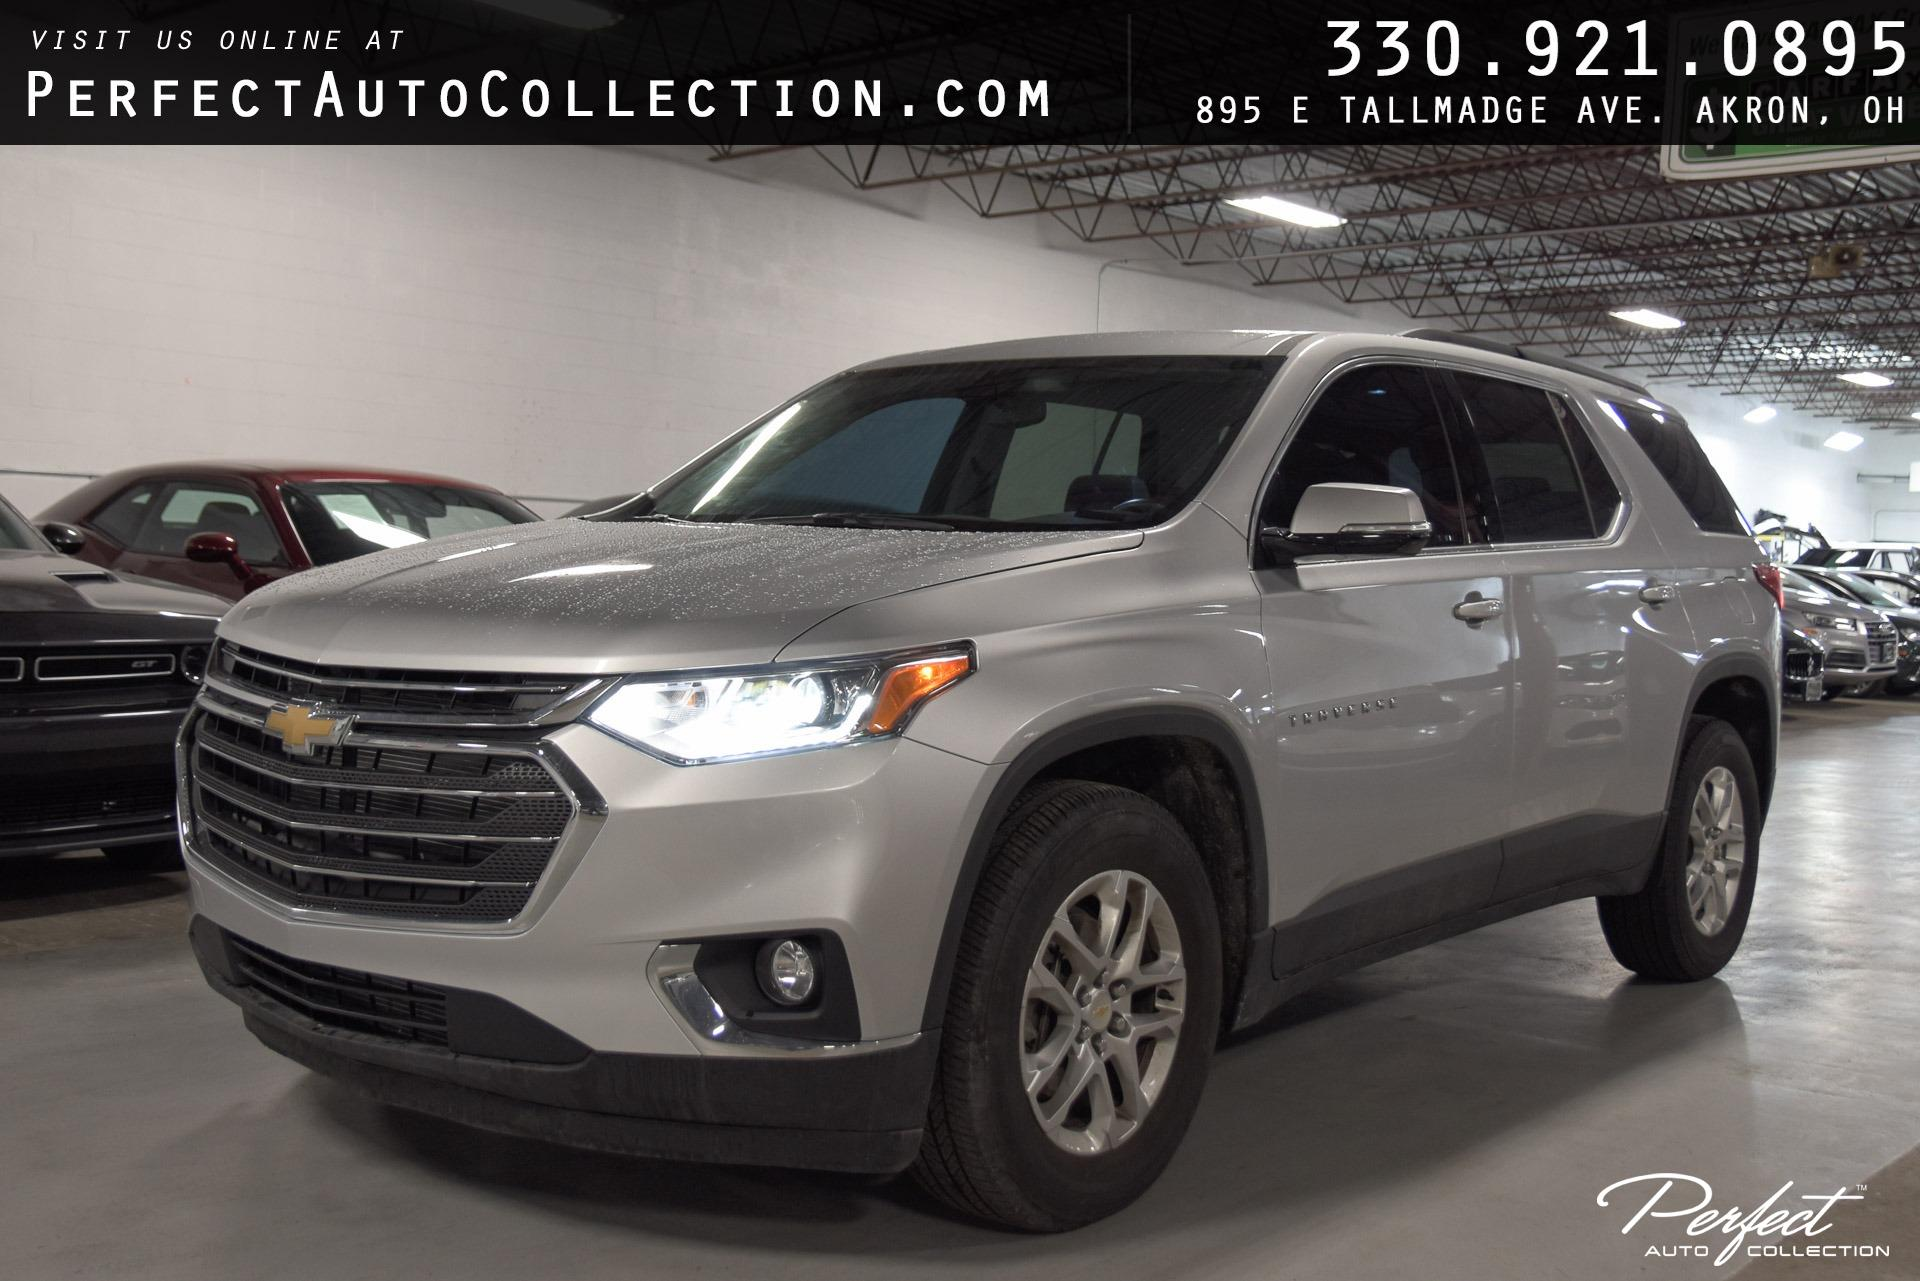 Used 2020 Chevrolet Traverse LT Leather for sale Sold at Perfect Auto Collection in Akron OH 44310 1